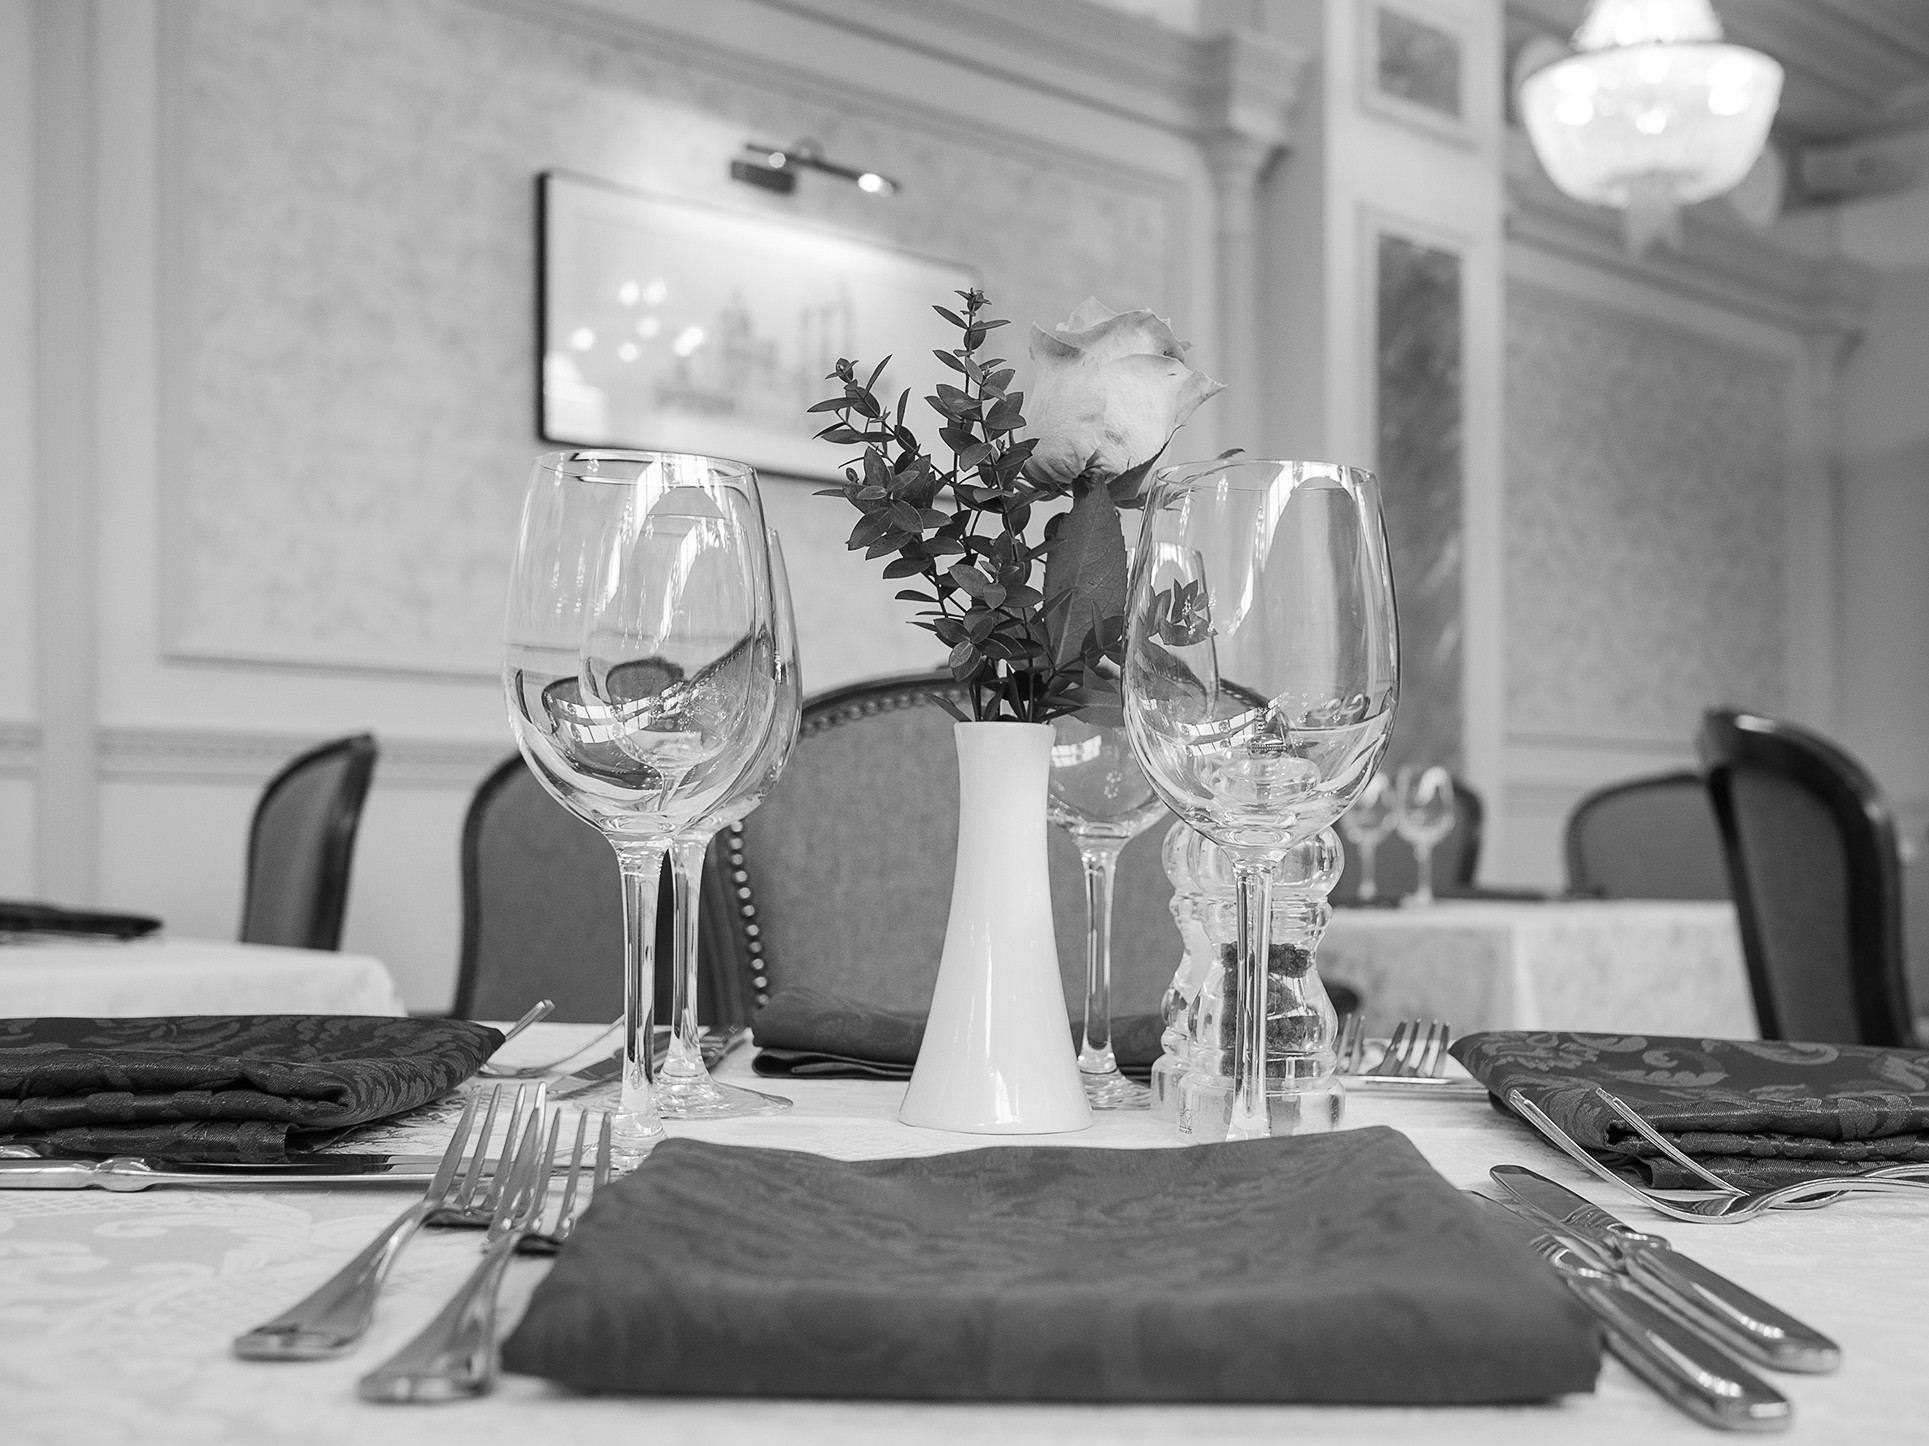 Photographing the hall for weddings and events in the restaurant. Photographer Kirill Toll